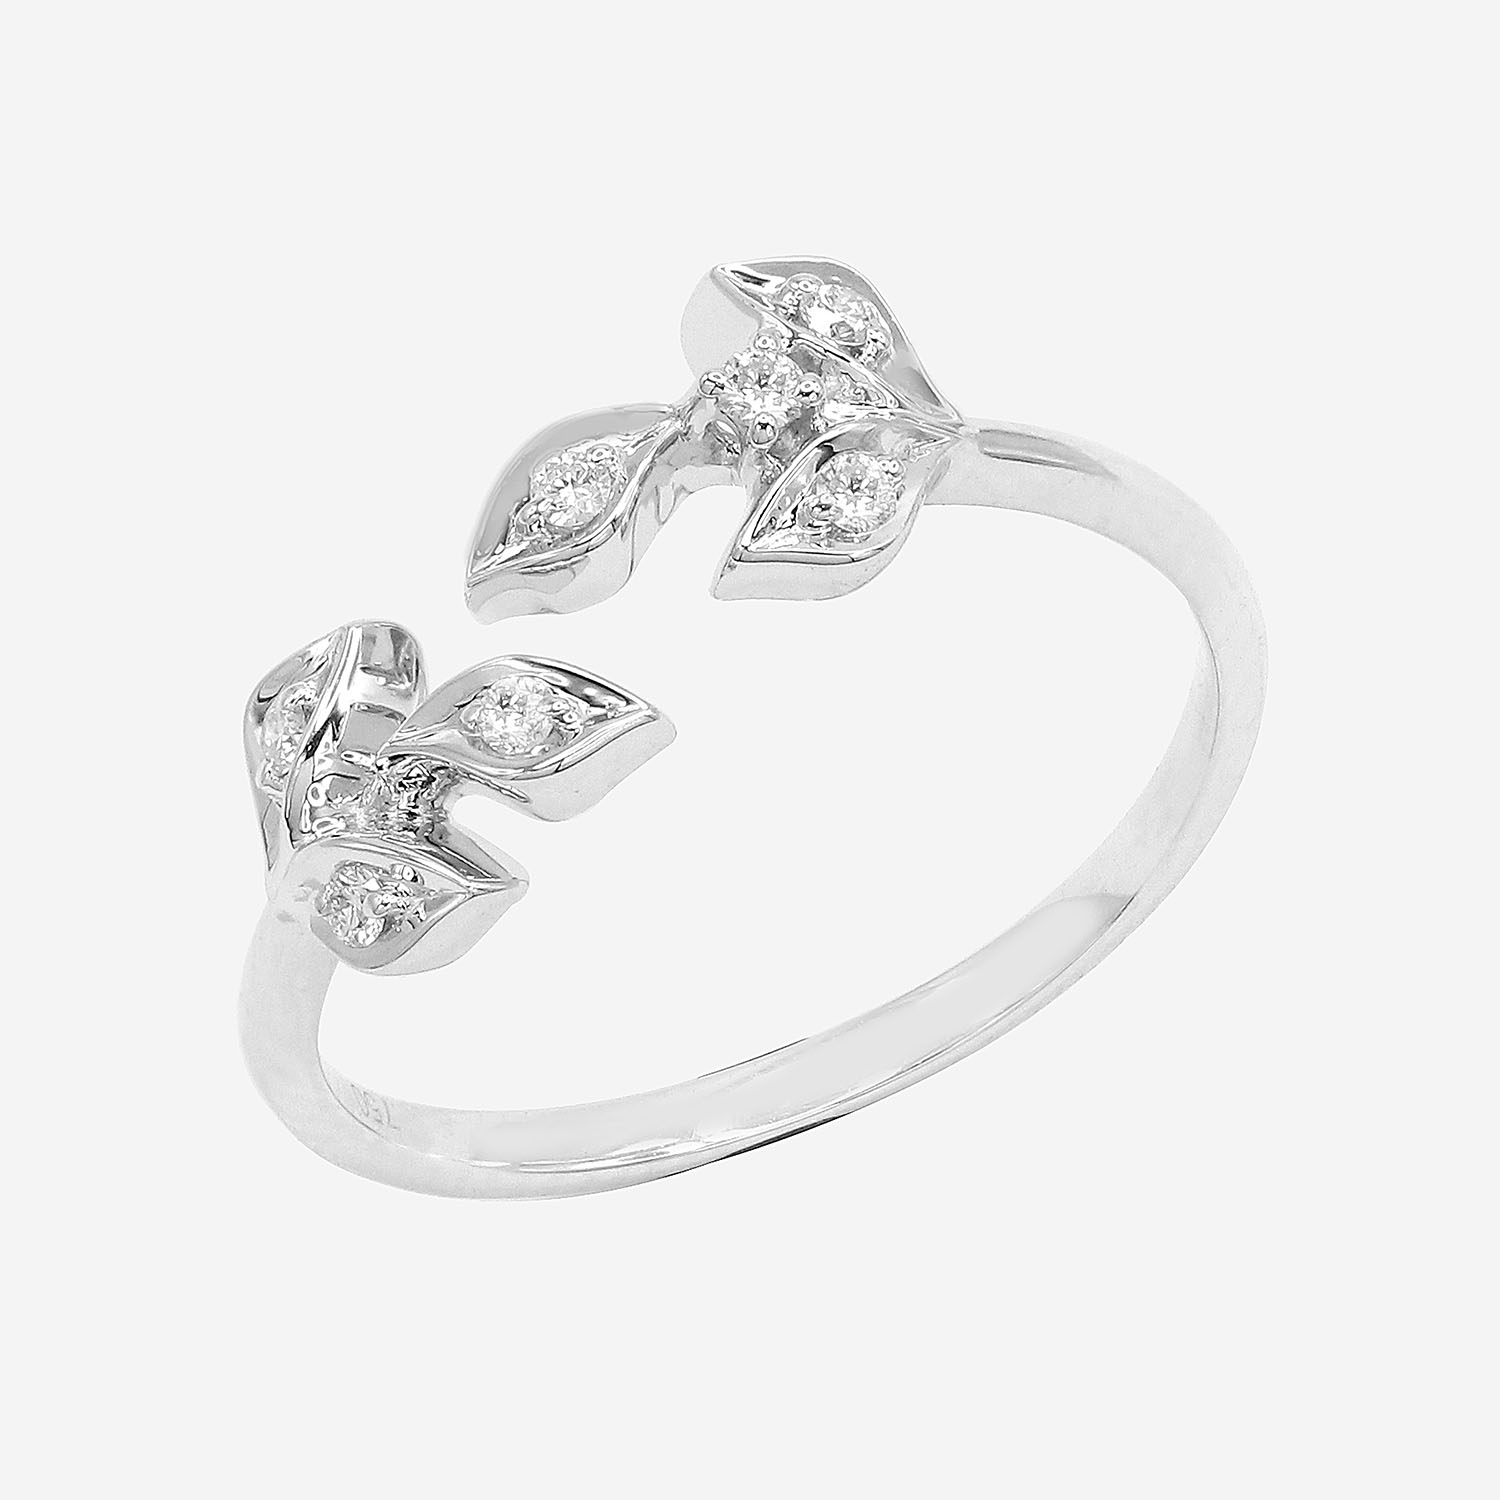 Aisha Ring by Amira Karaouli on curated-crowd.com